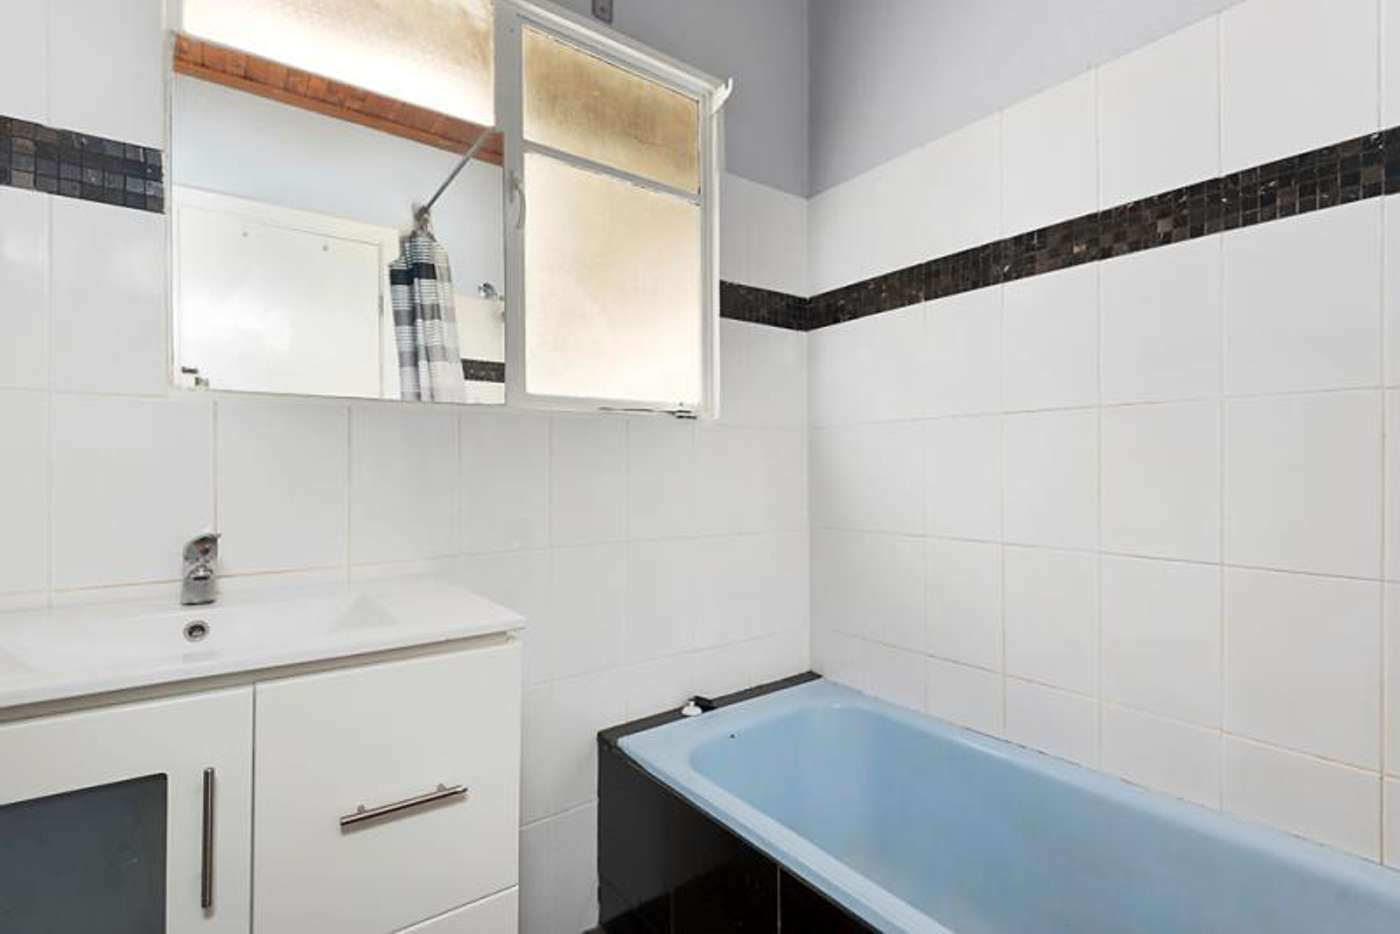 Fifth view of Homely house listing, 4 Cynga Street, Preston VIC 3072